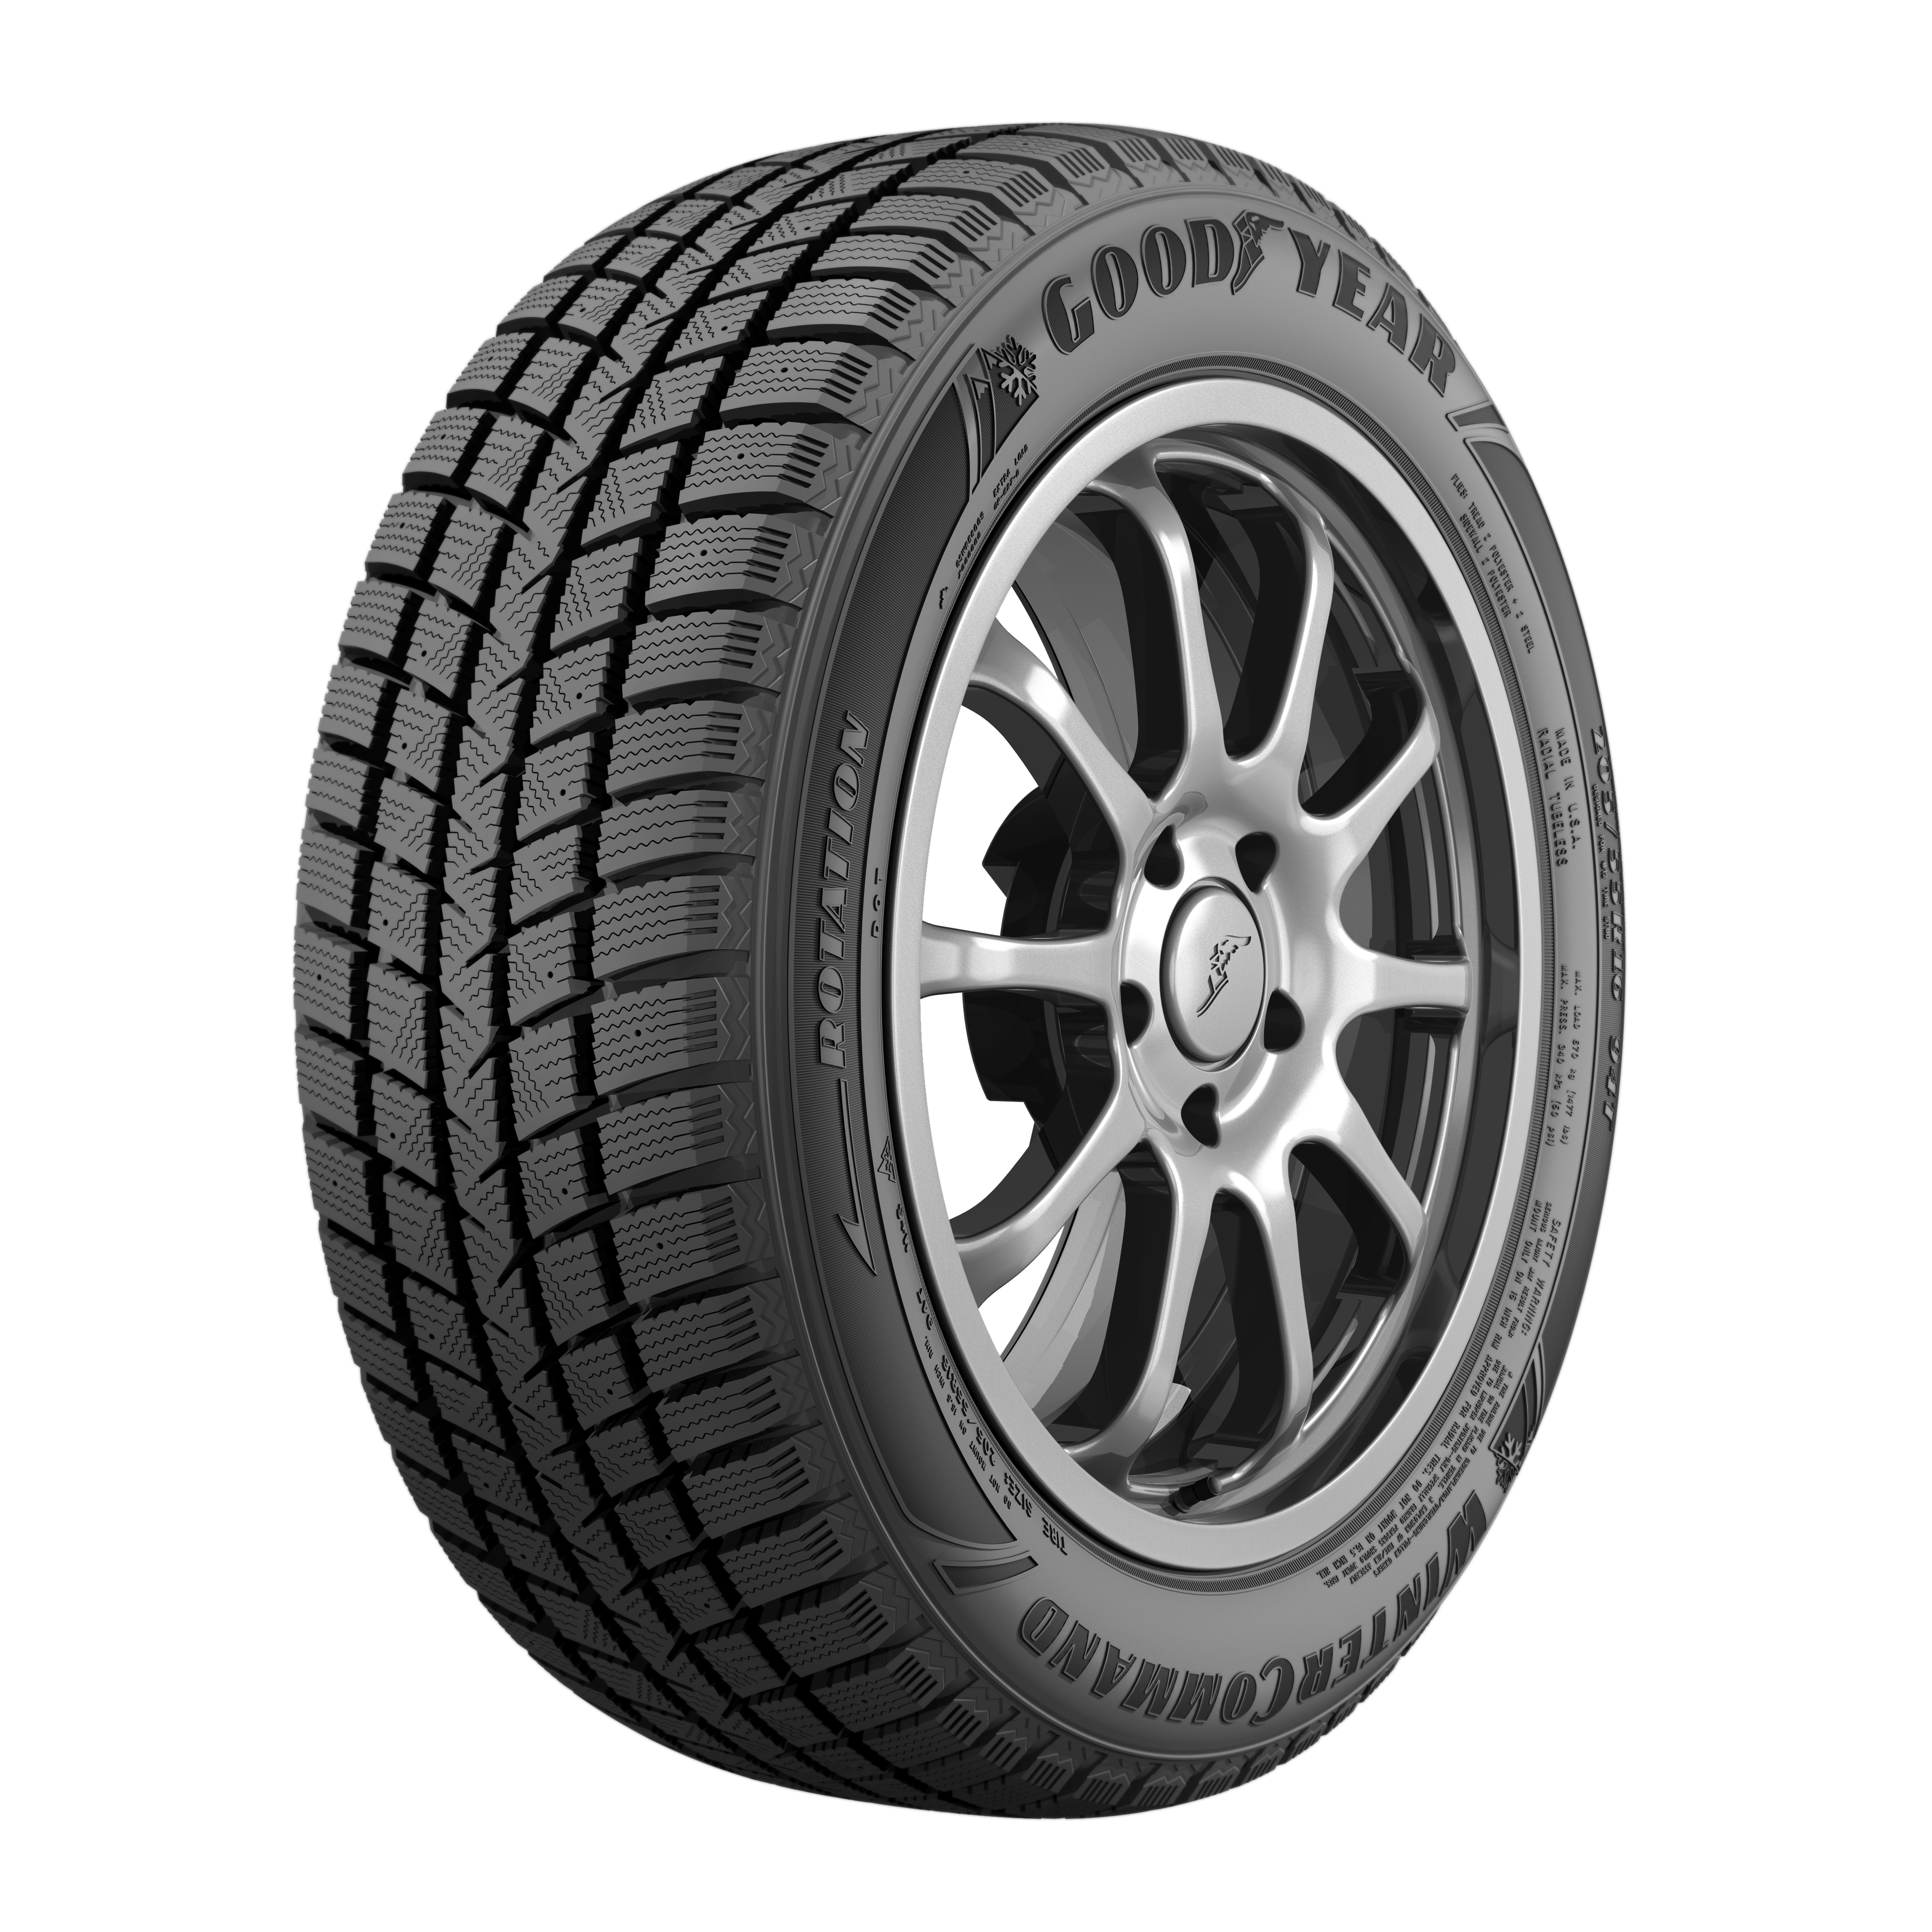 Dealers Help Goodyear With New Product Development